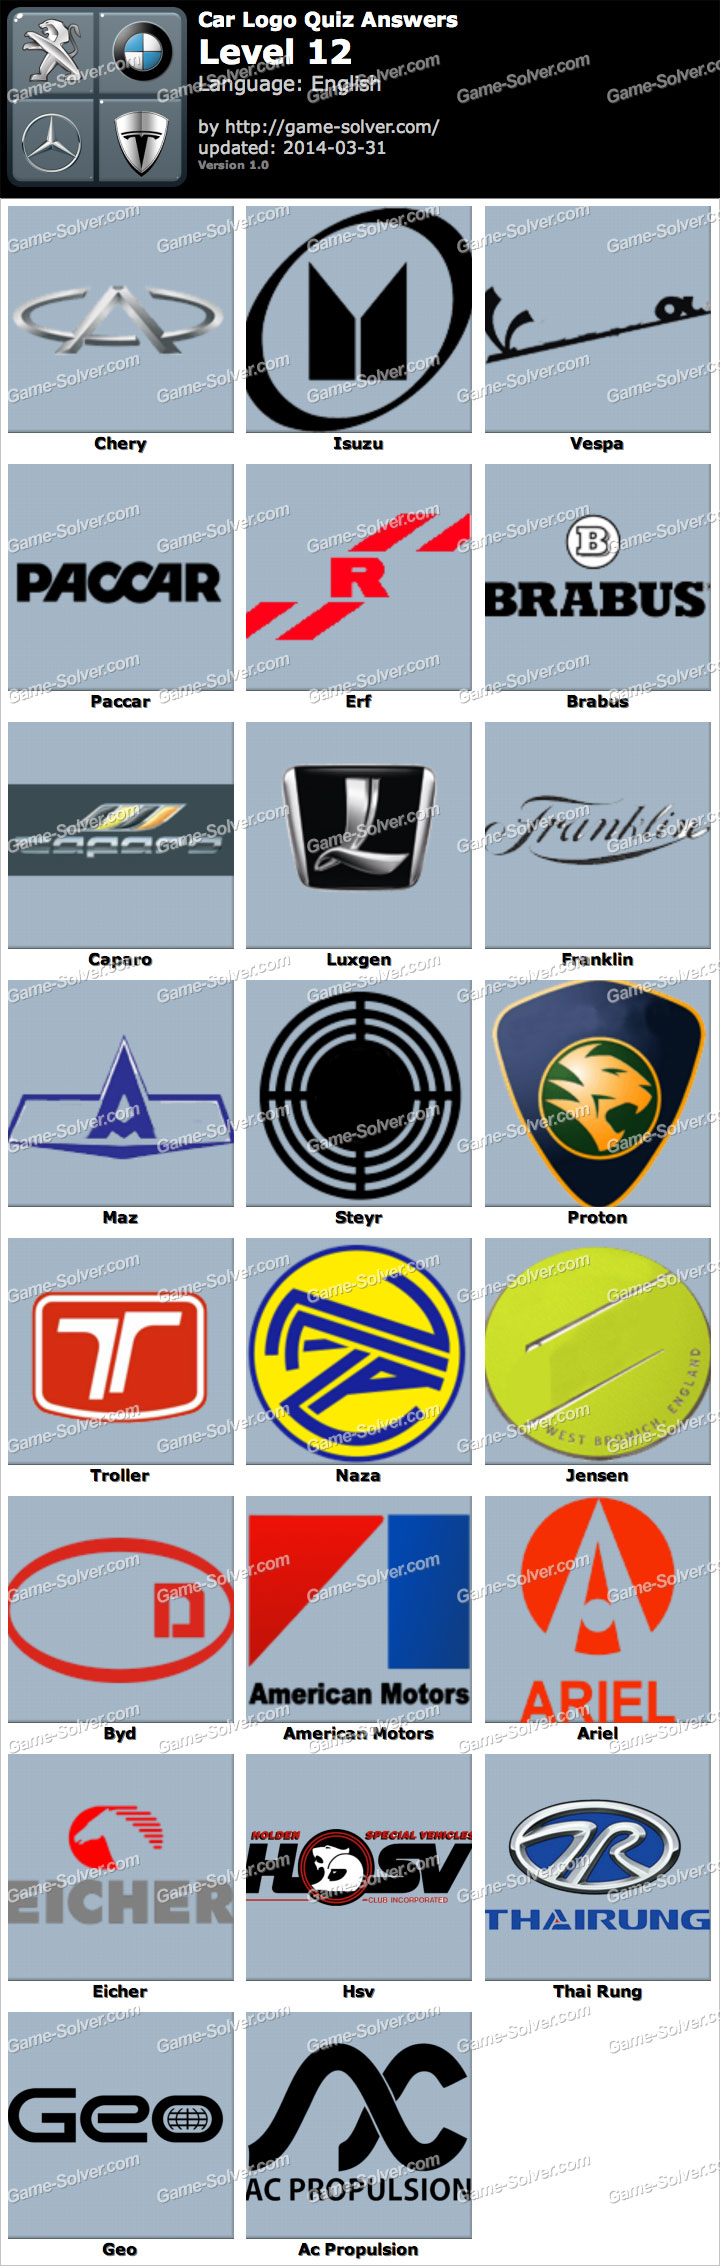 Car Logo Quiz Level 12